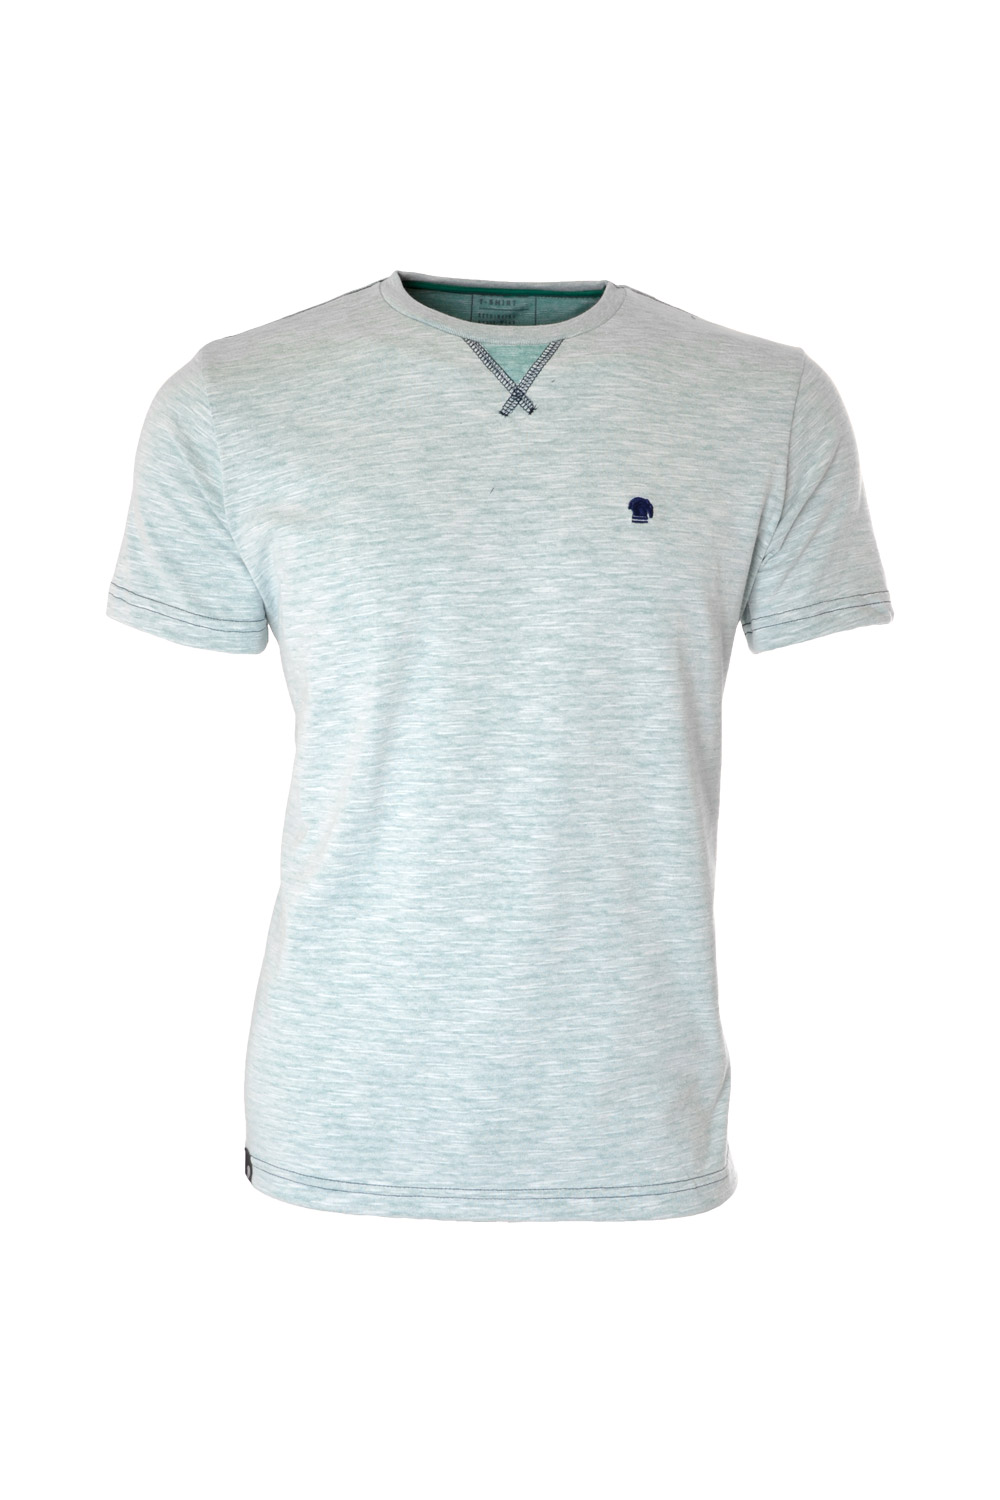 CAMISETA MC BLUES SUPER SLIM ALGODAO GOLA C FLAME VERDE CLARO